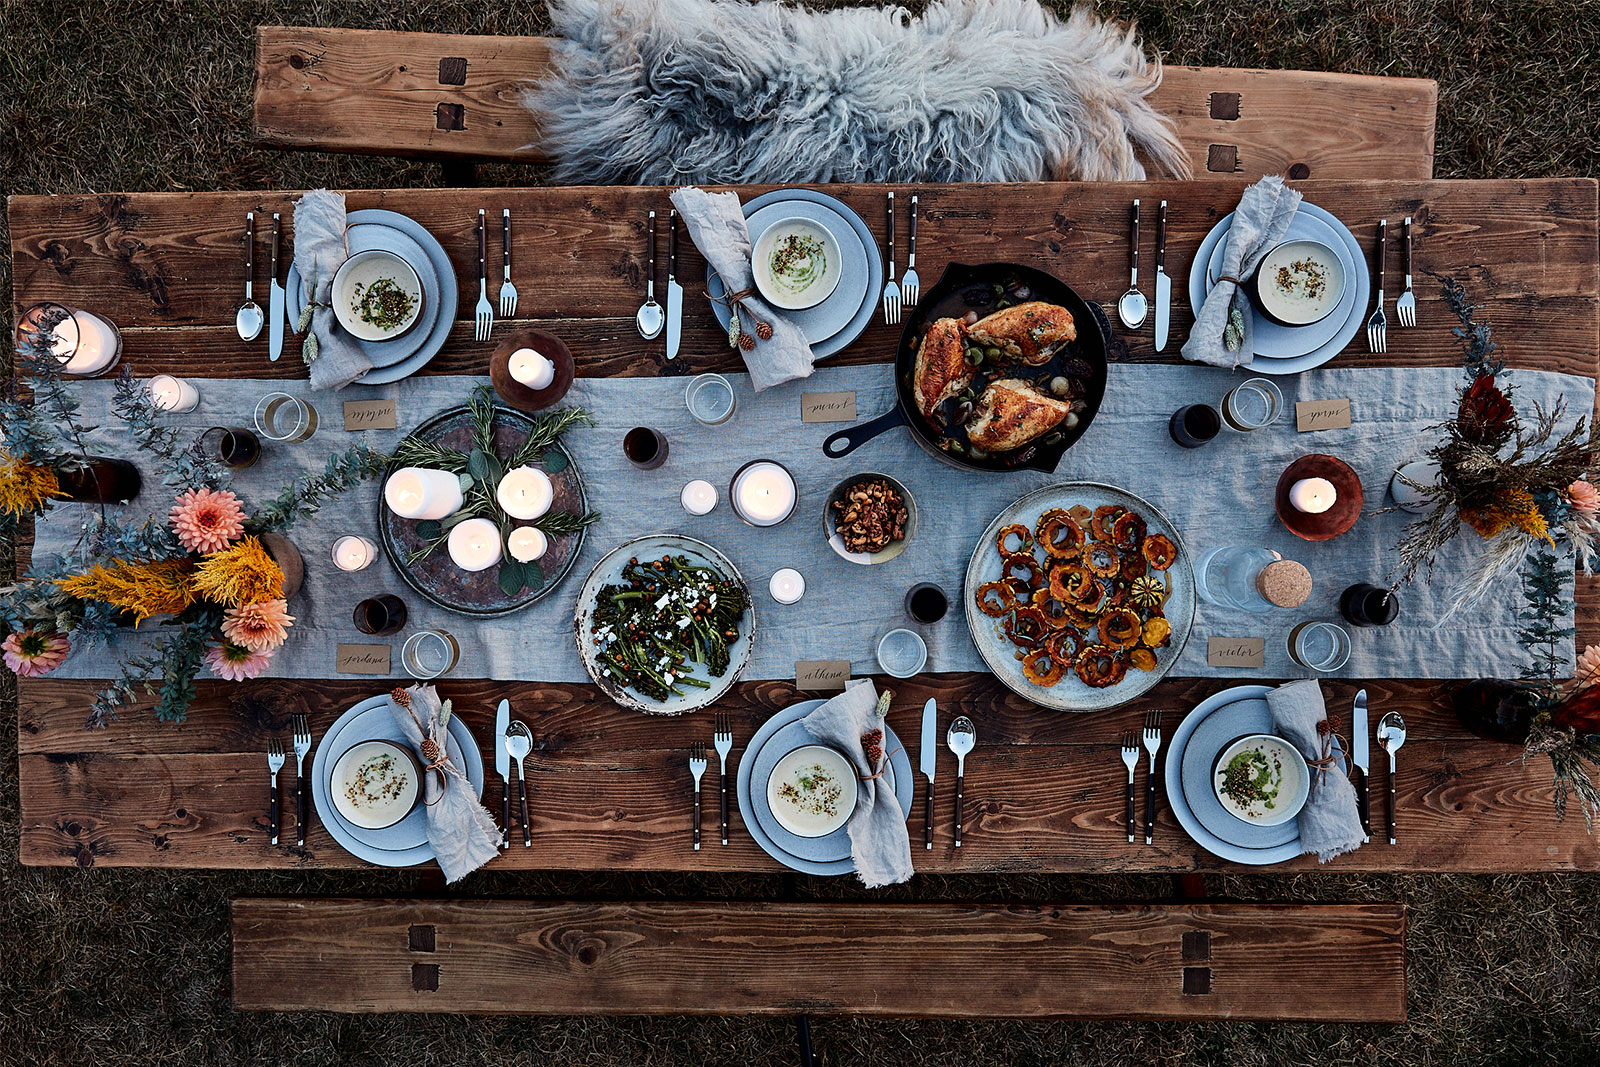 Decadent outdoor fall meal